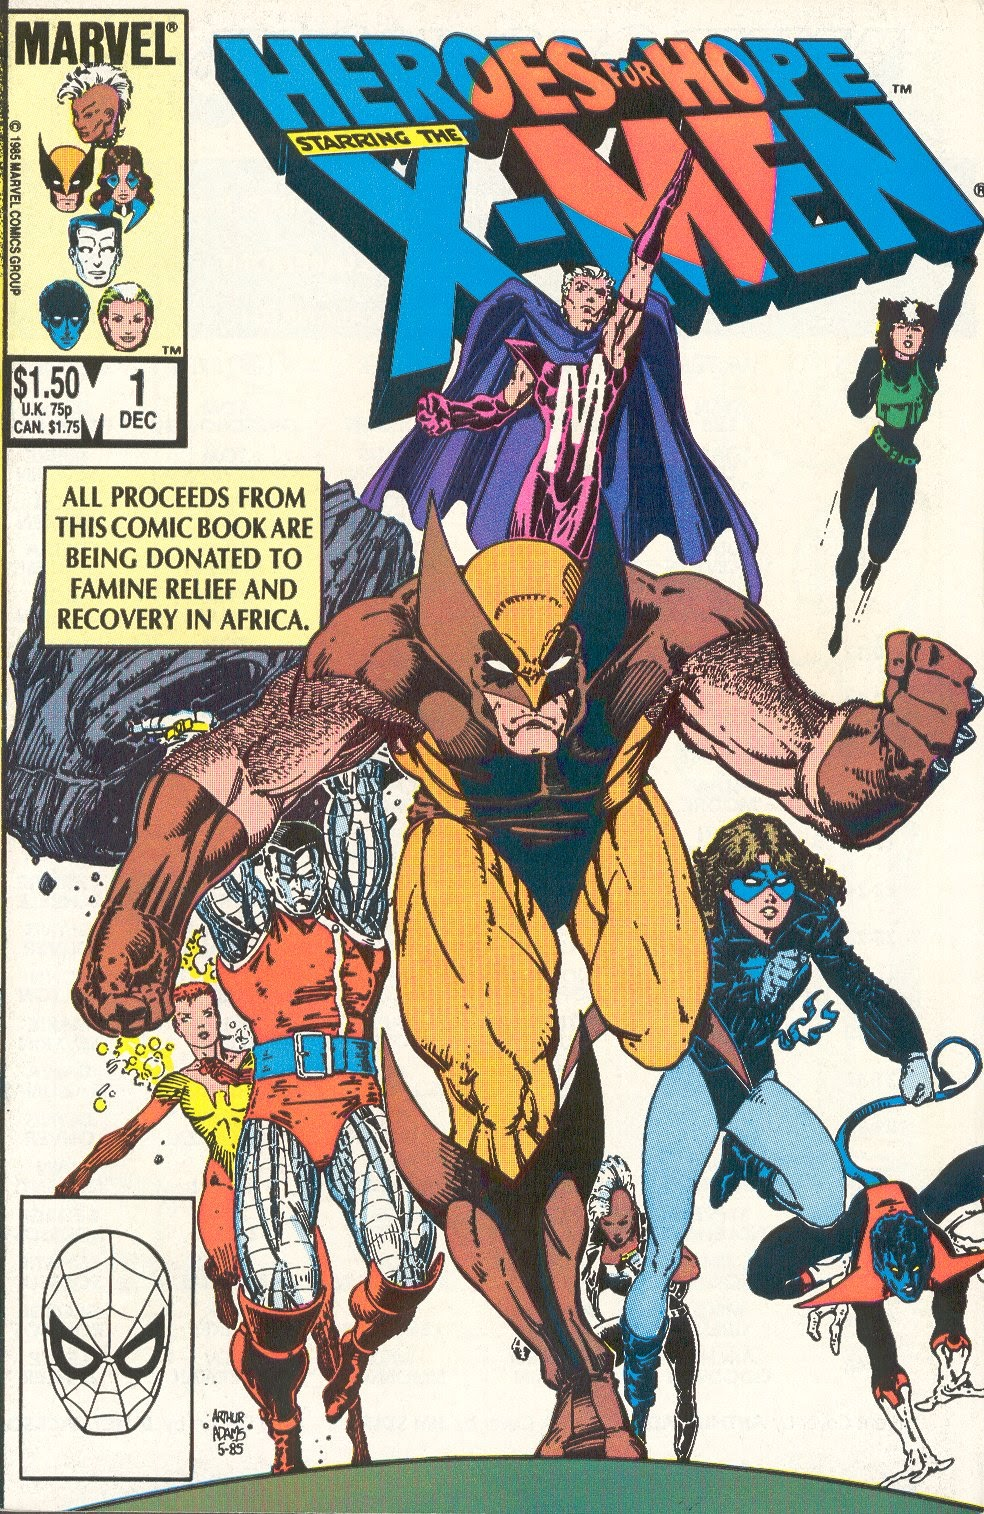 Heroes for Hope Starring the X-Men Full Page 1